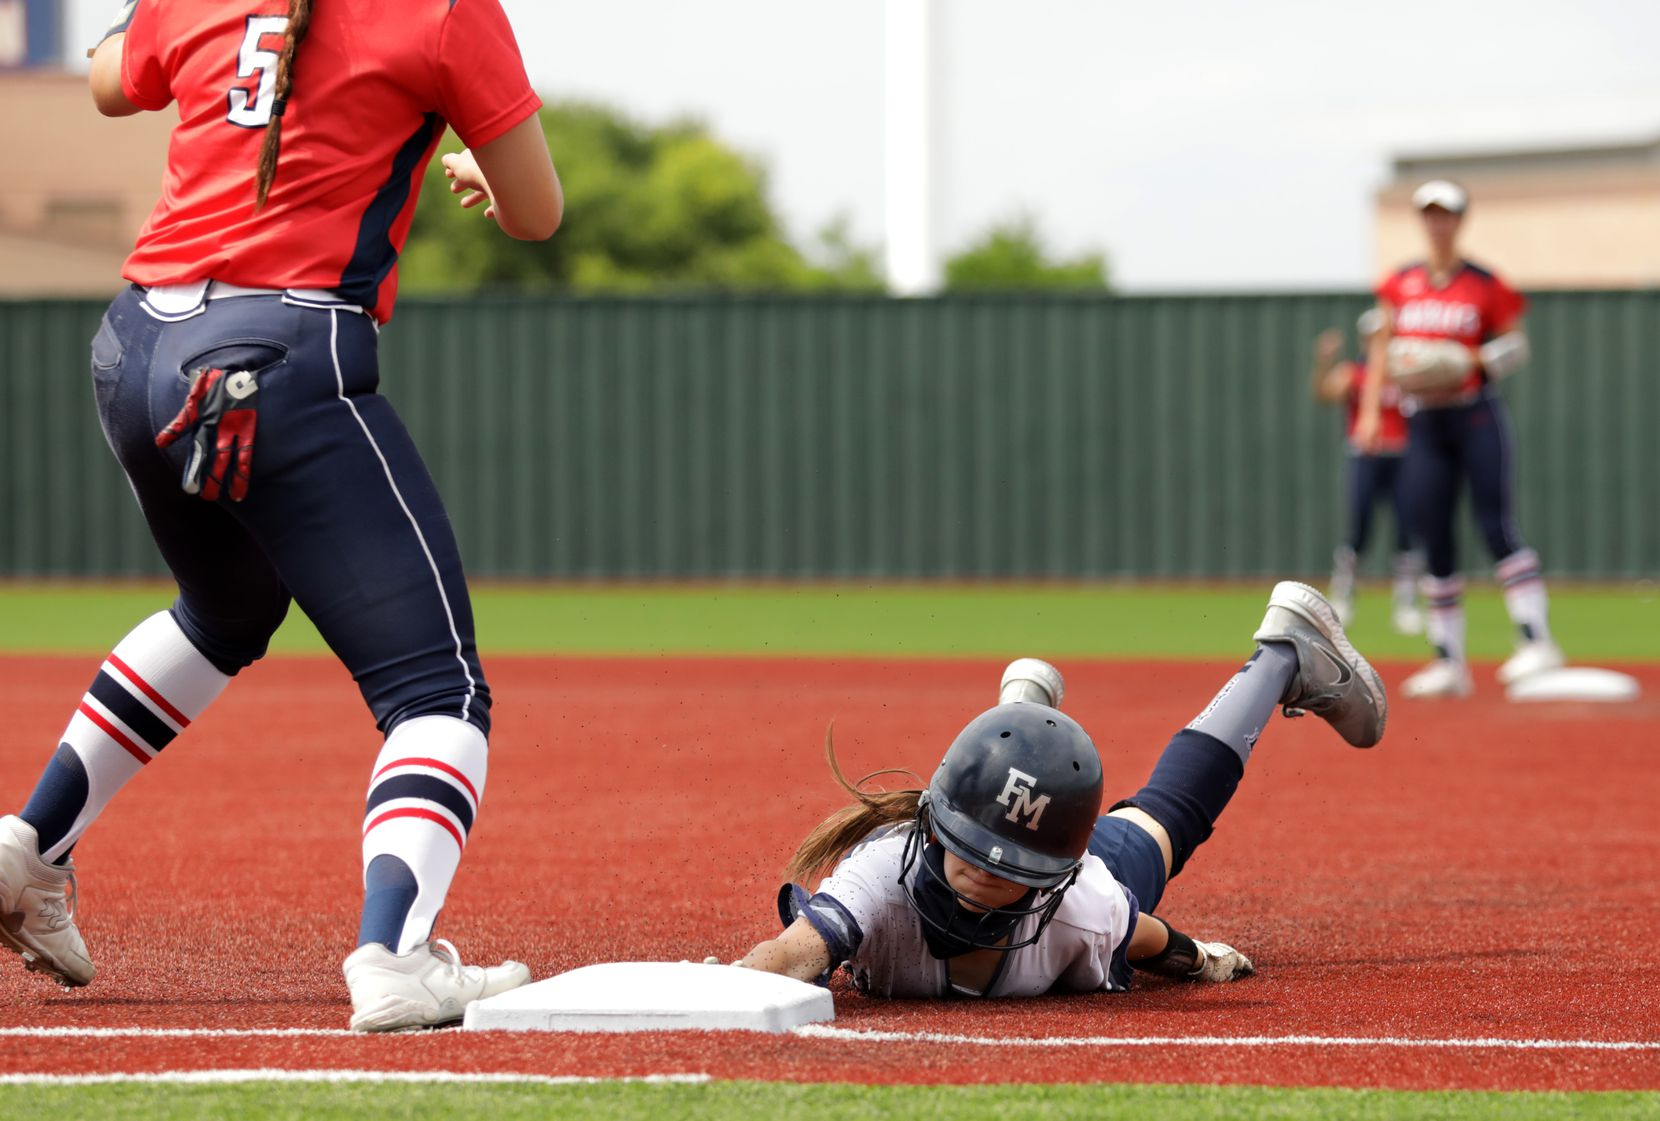 Flower Mound High School player #7, Logan Halleman, slides back into first base as Allen High School player #5, Brooklyn Purtell, attempts to get stop her during a softball playoff game at Allen High School in Allen, TX, on May 15, 2021. (Jason Janik/Special Contributor)